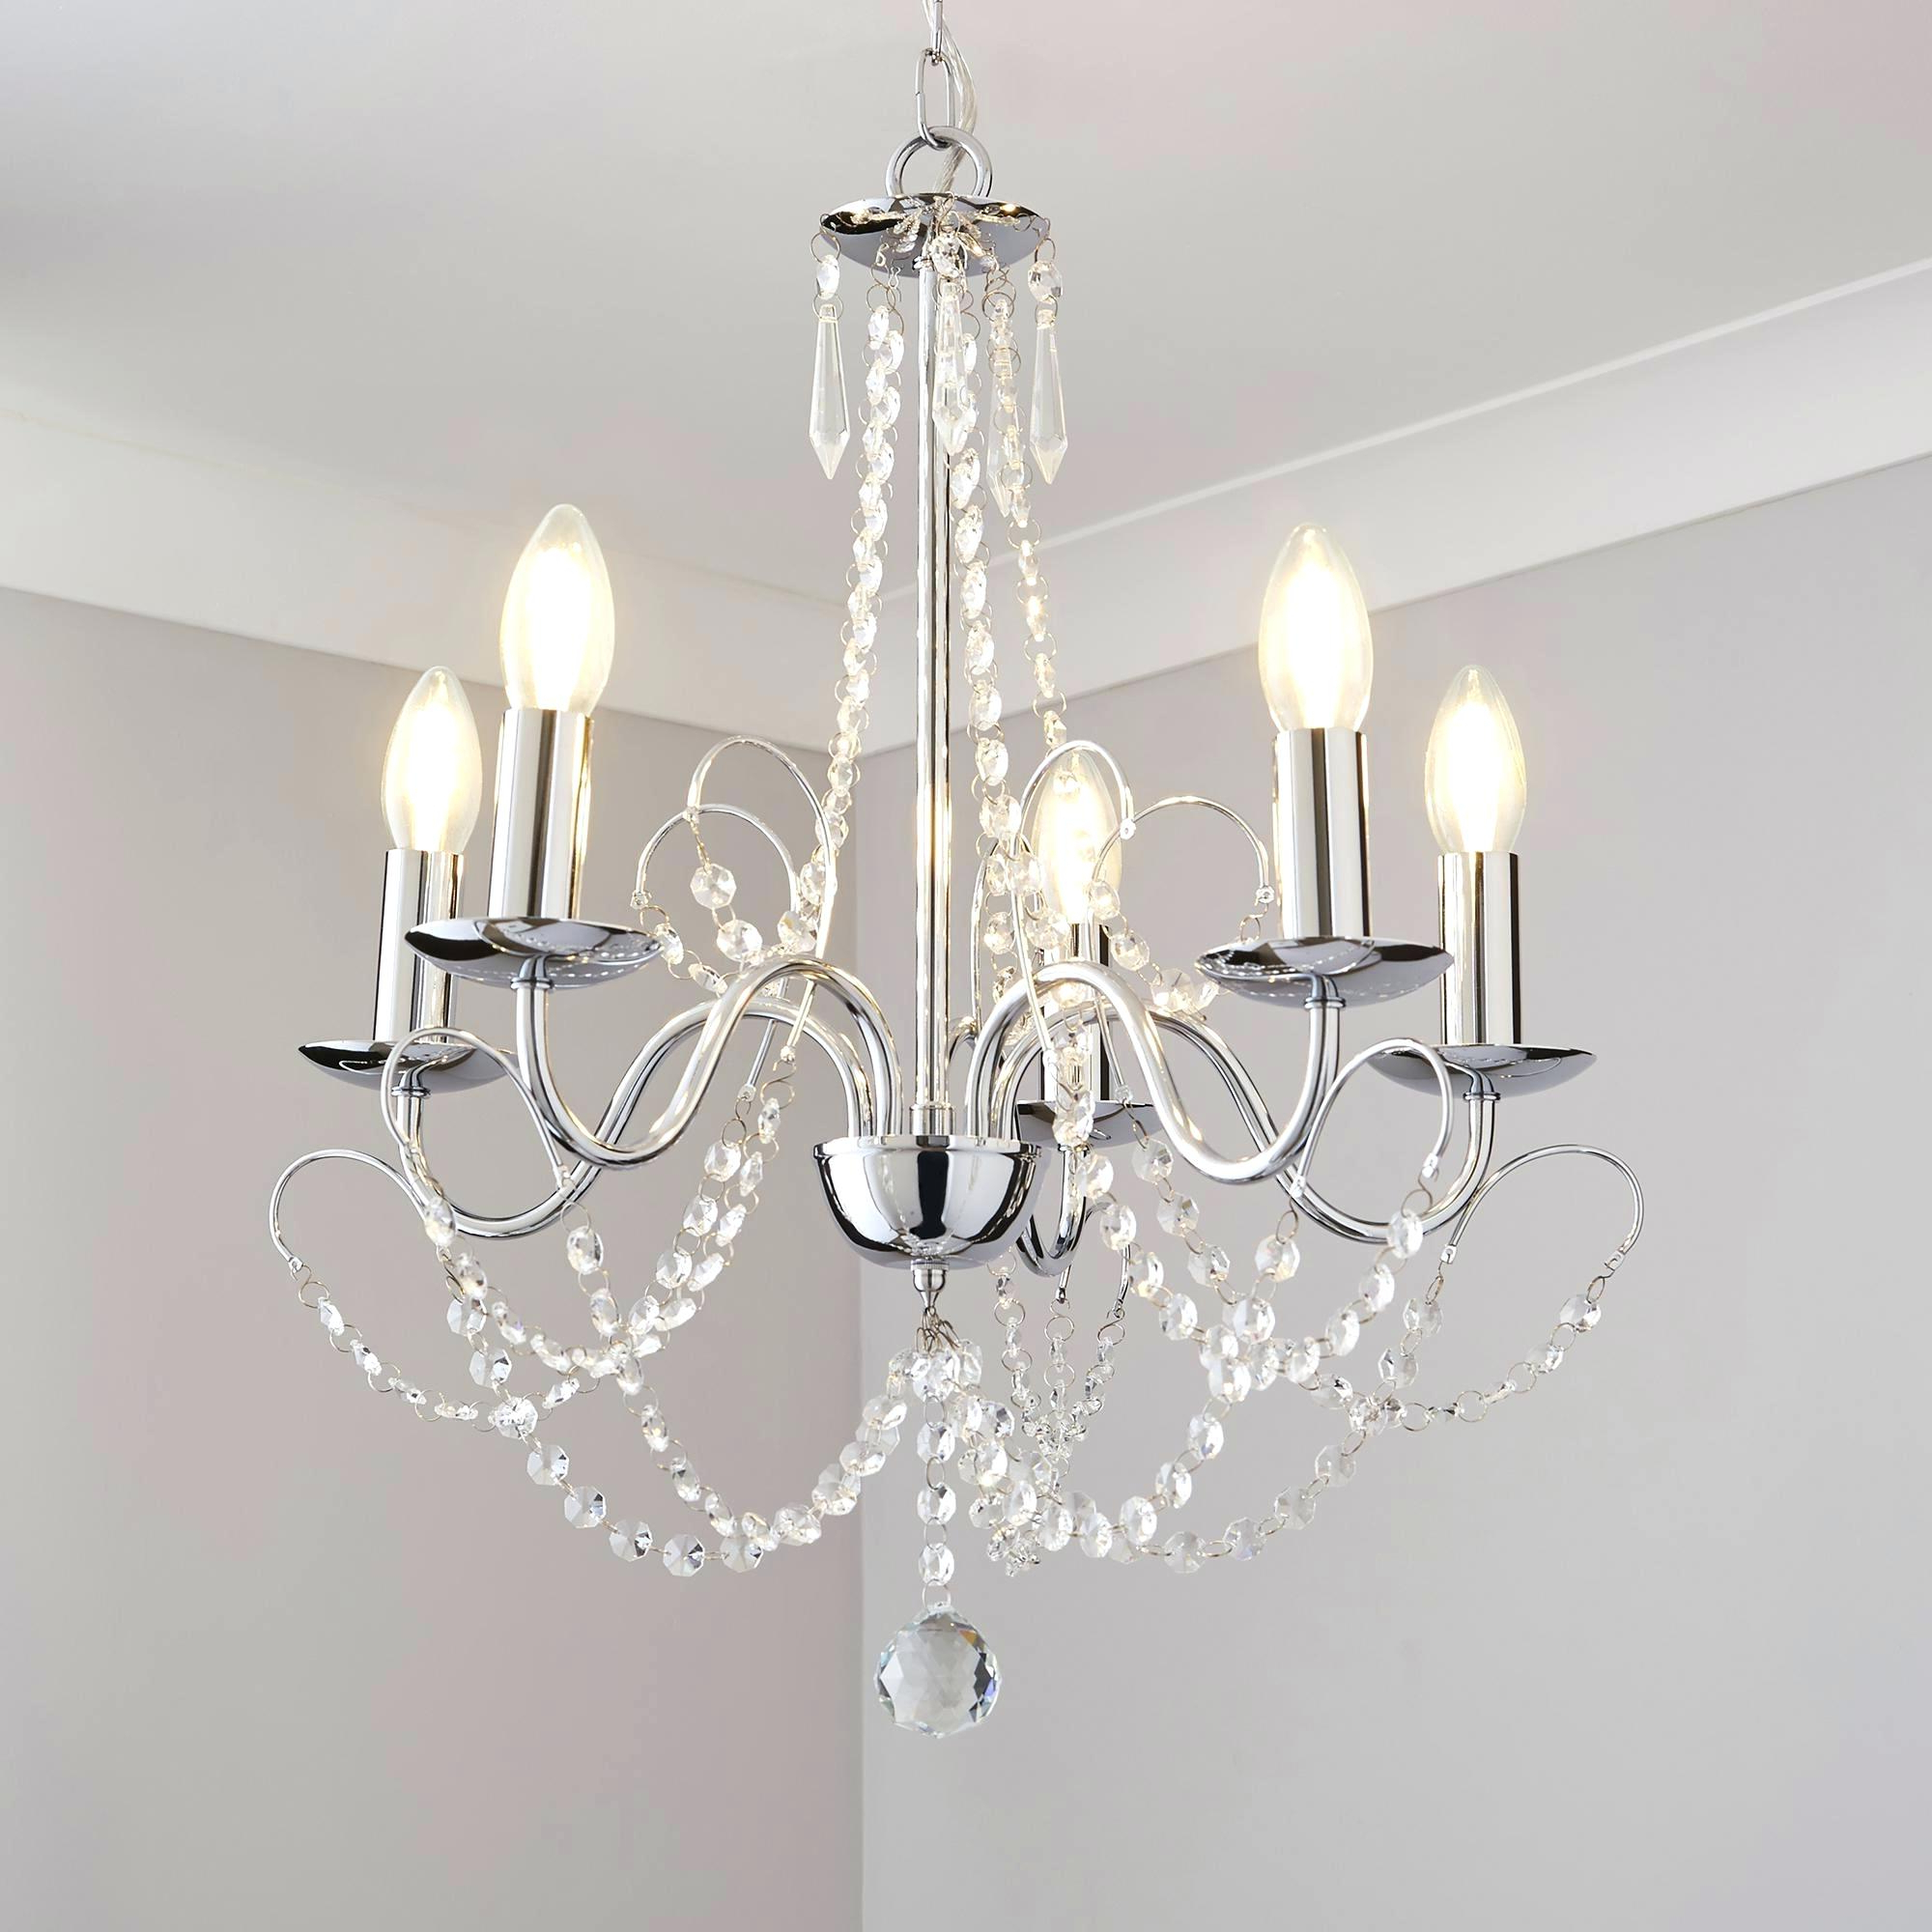 Newest Berger 5-Light Candle Style Chandeliers for 5 Light Chandelier – Francenegaal.co